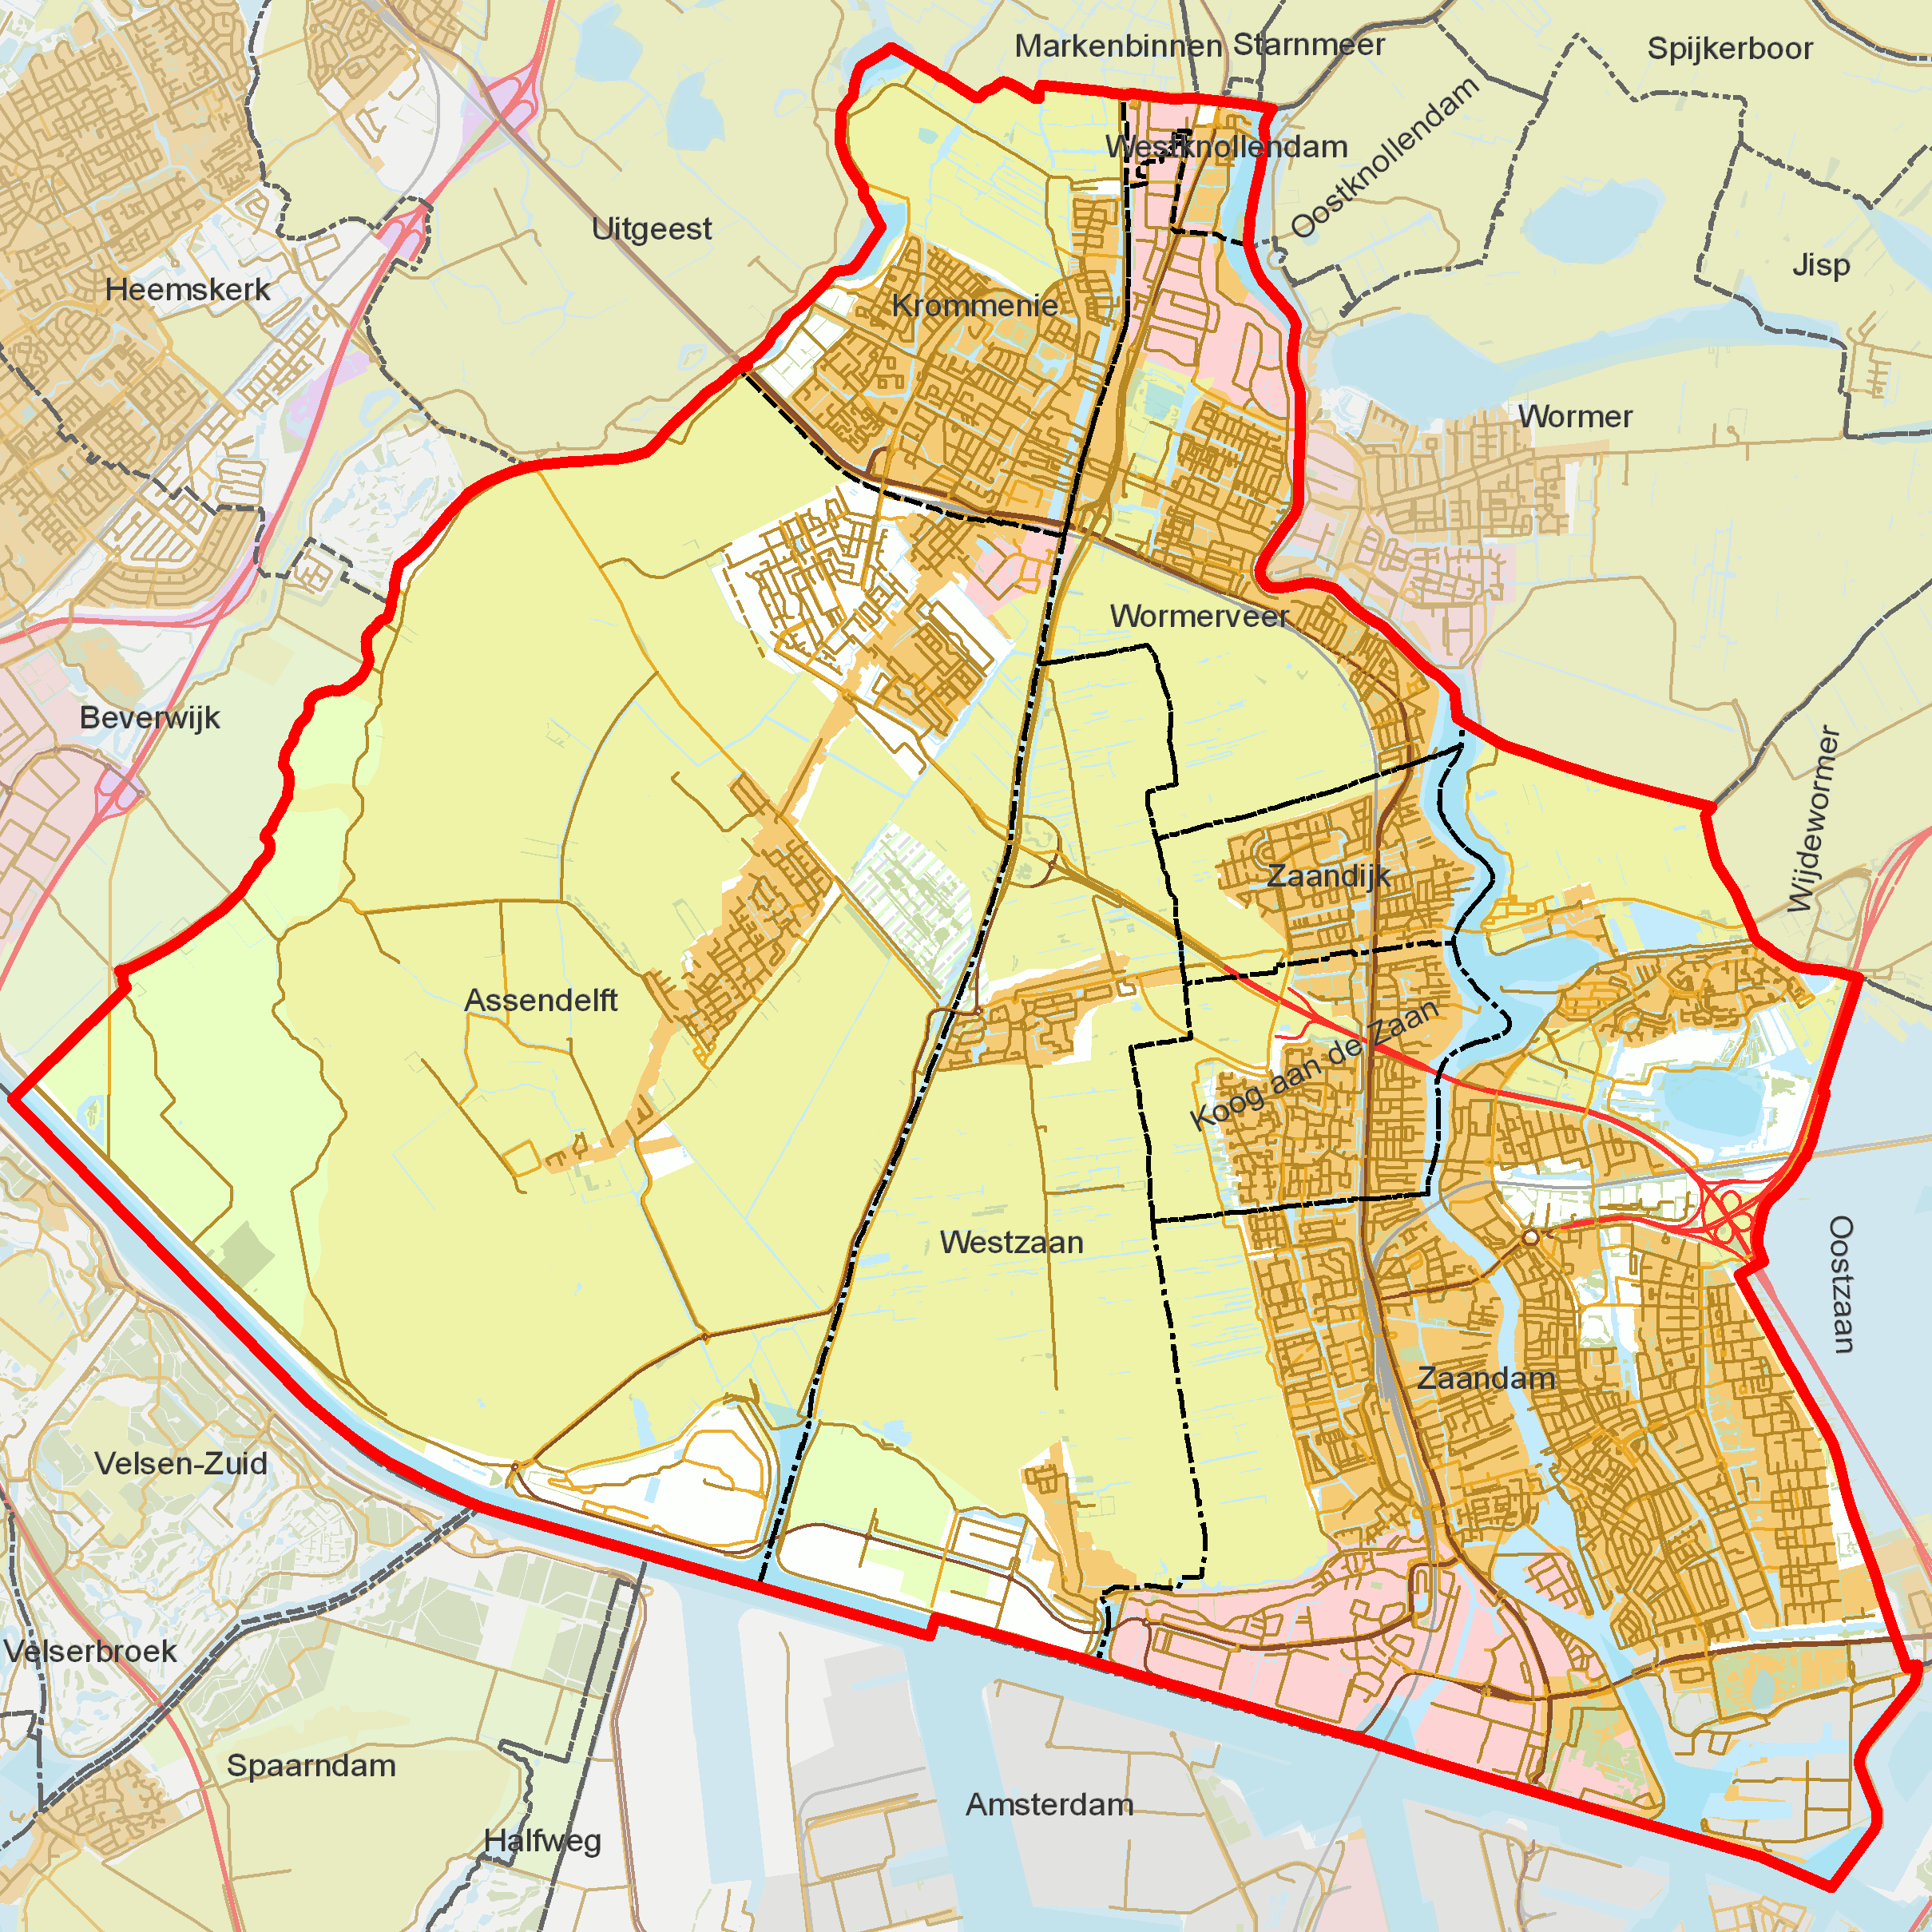 FileBAG woonplaatsen Gemeente Zaanstadpng Wikimedia Commons